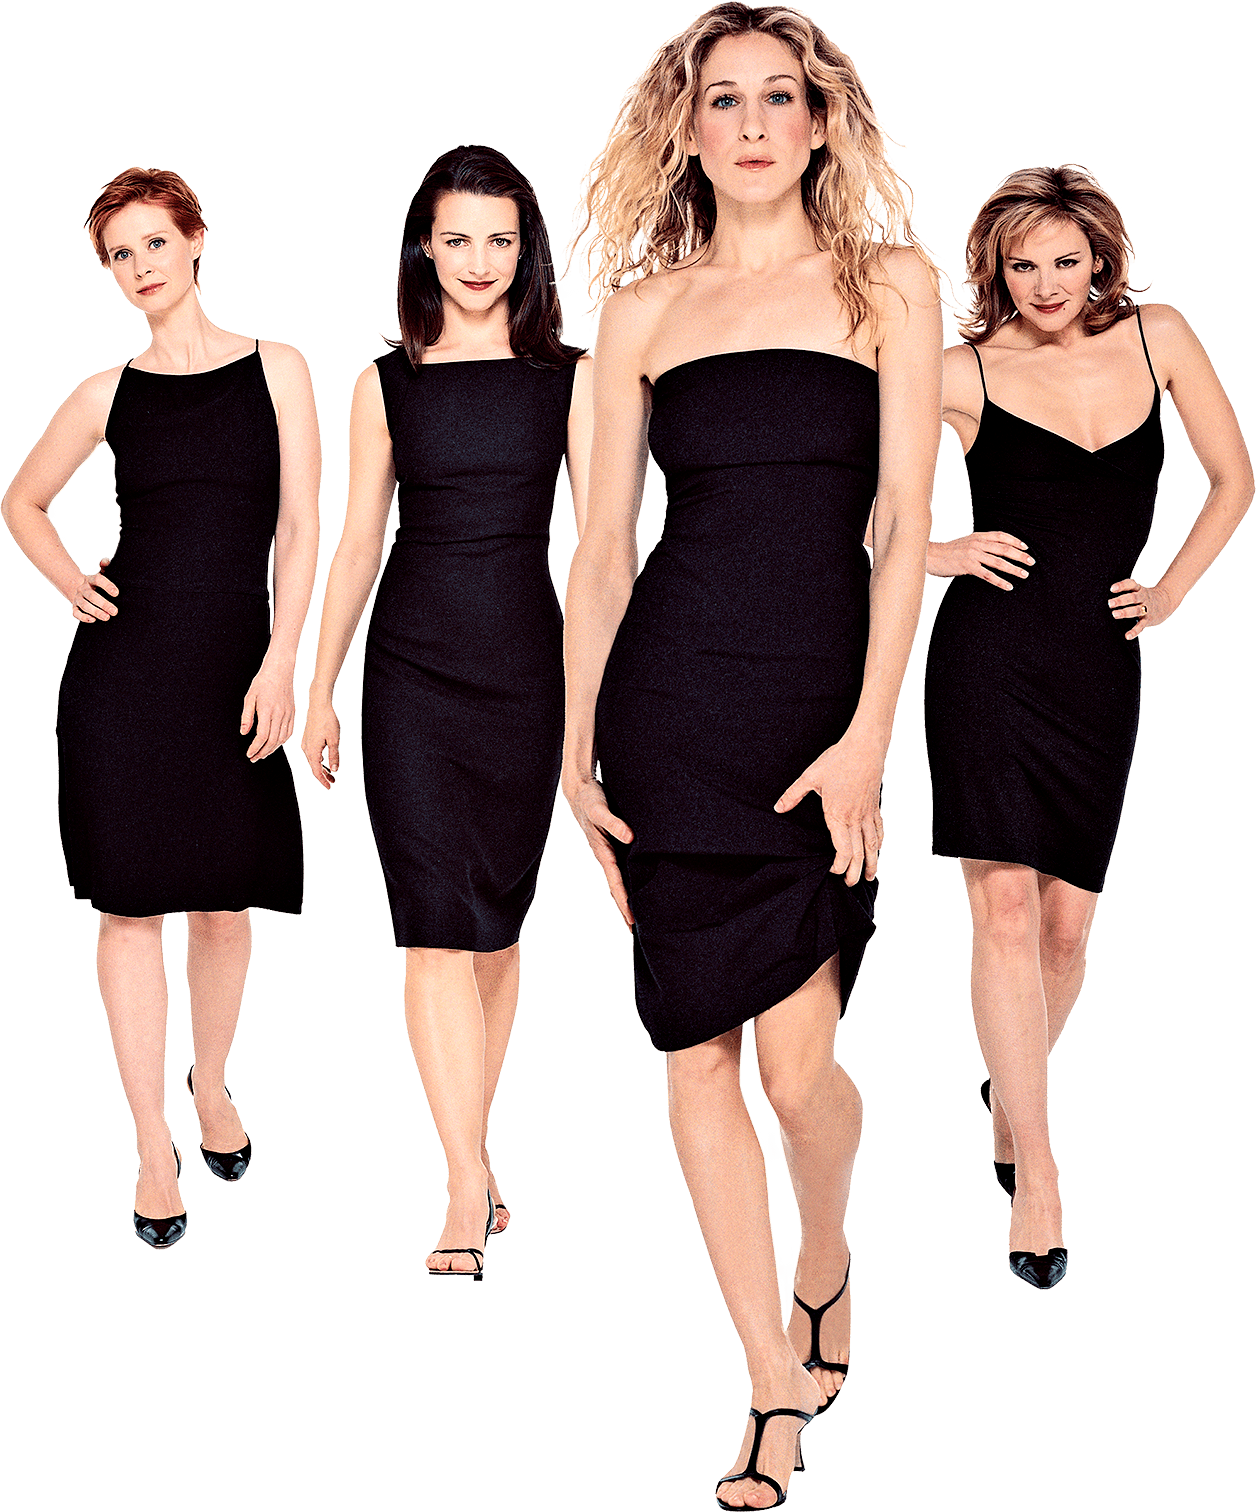 sex and the city cast wearing all black